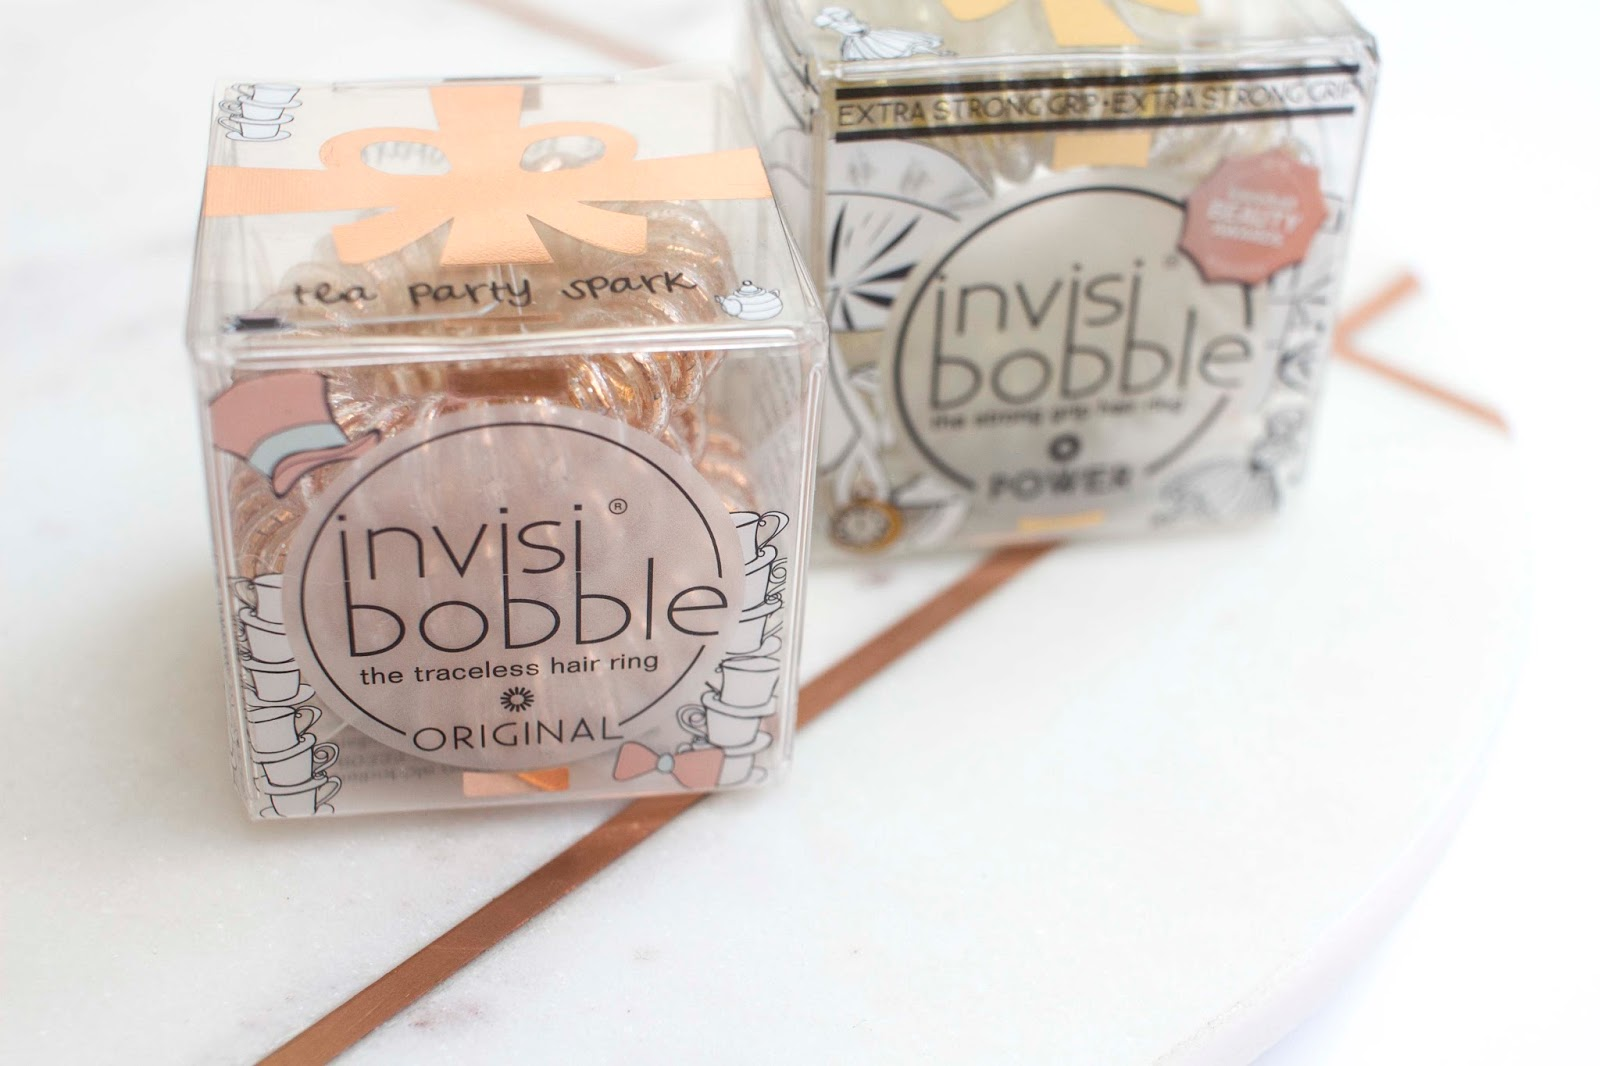 Here I have the Invisibobble Tea Party Spark  and Golden Adventure  sets fd6ba33b7b2